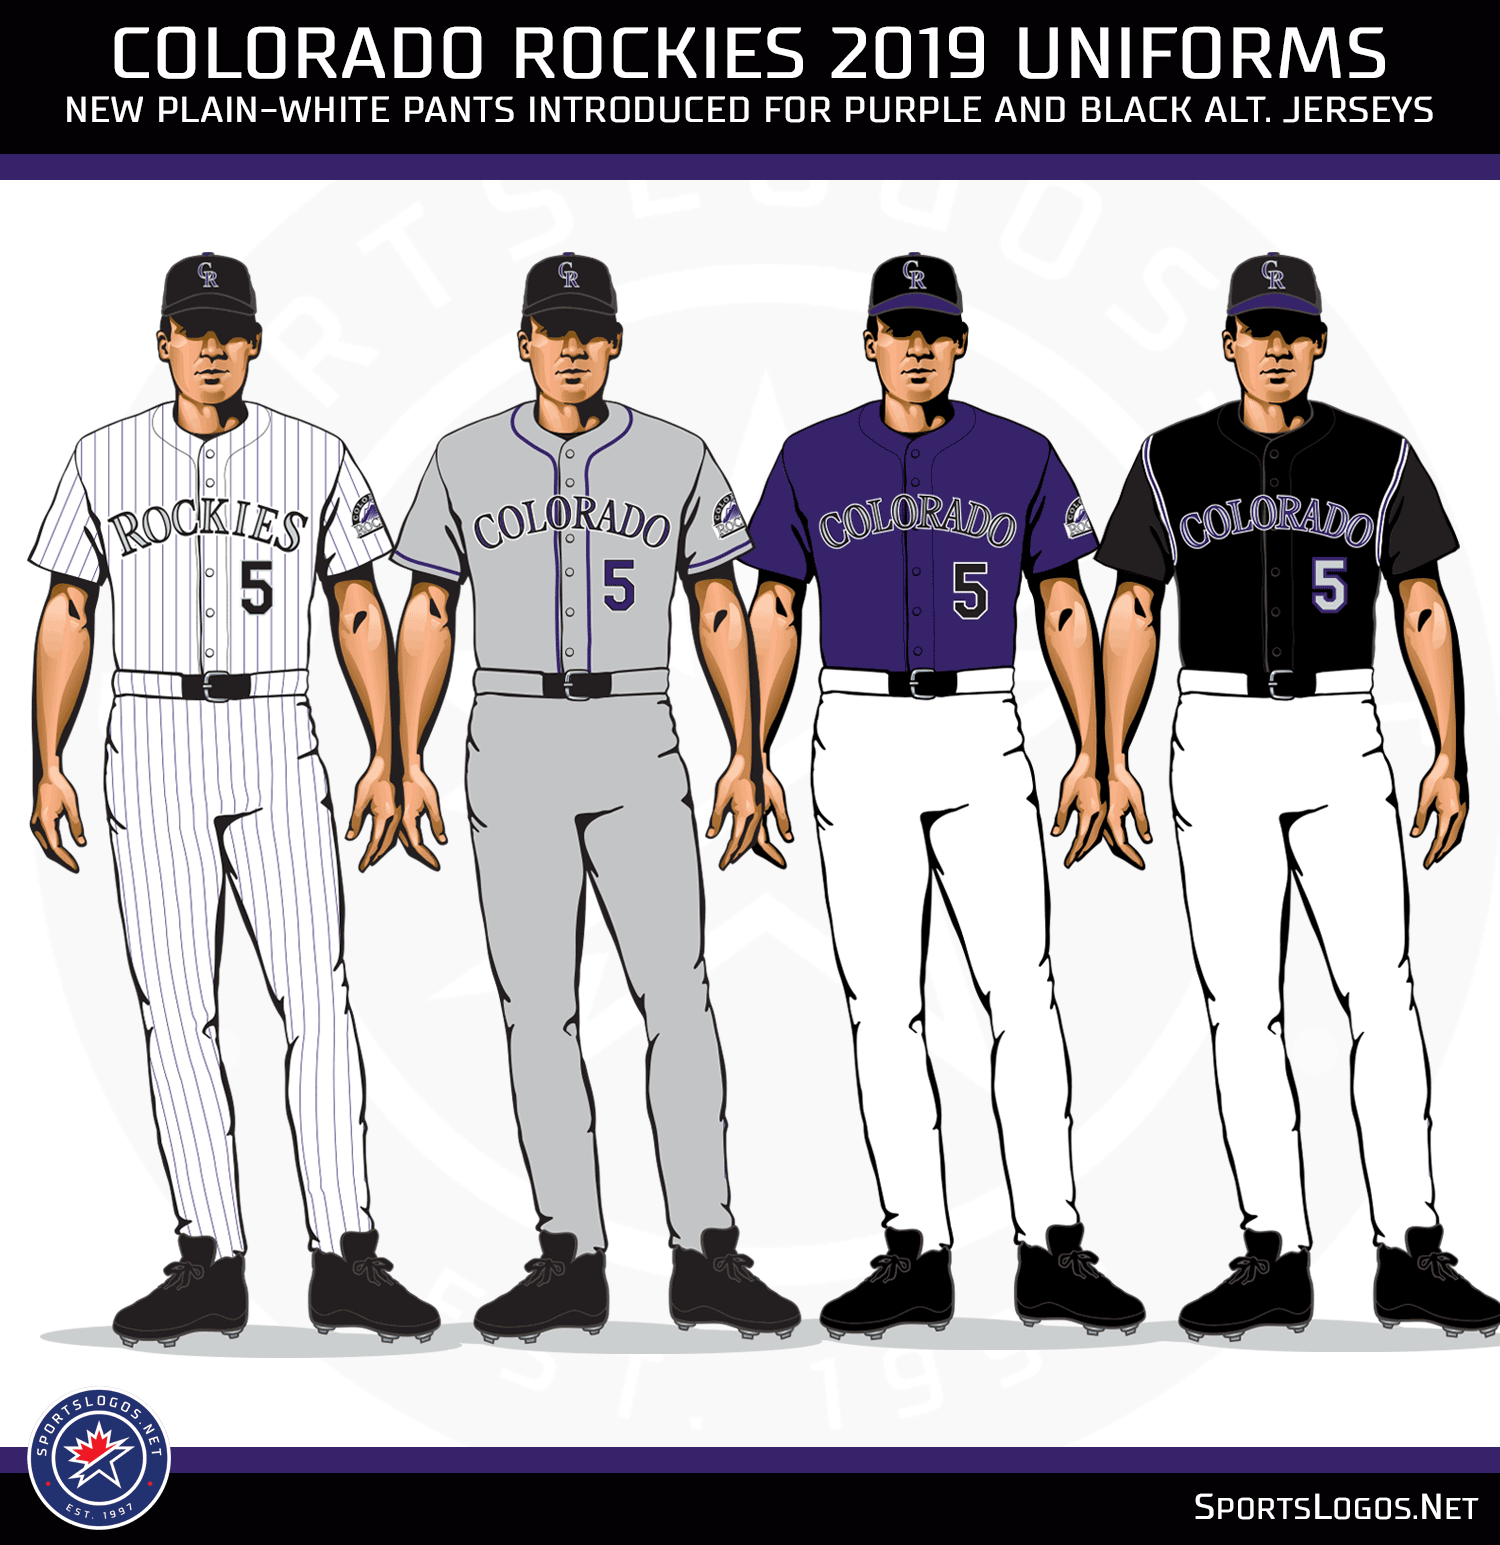 Best Mlb Uniforms 2019 2019 MLB New Logos and Uniforms | Chris Creamer's SportsLogos.